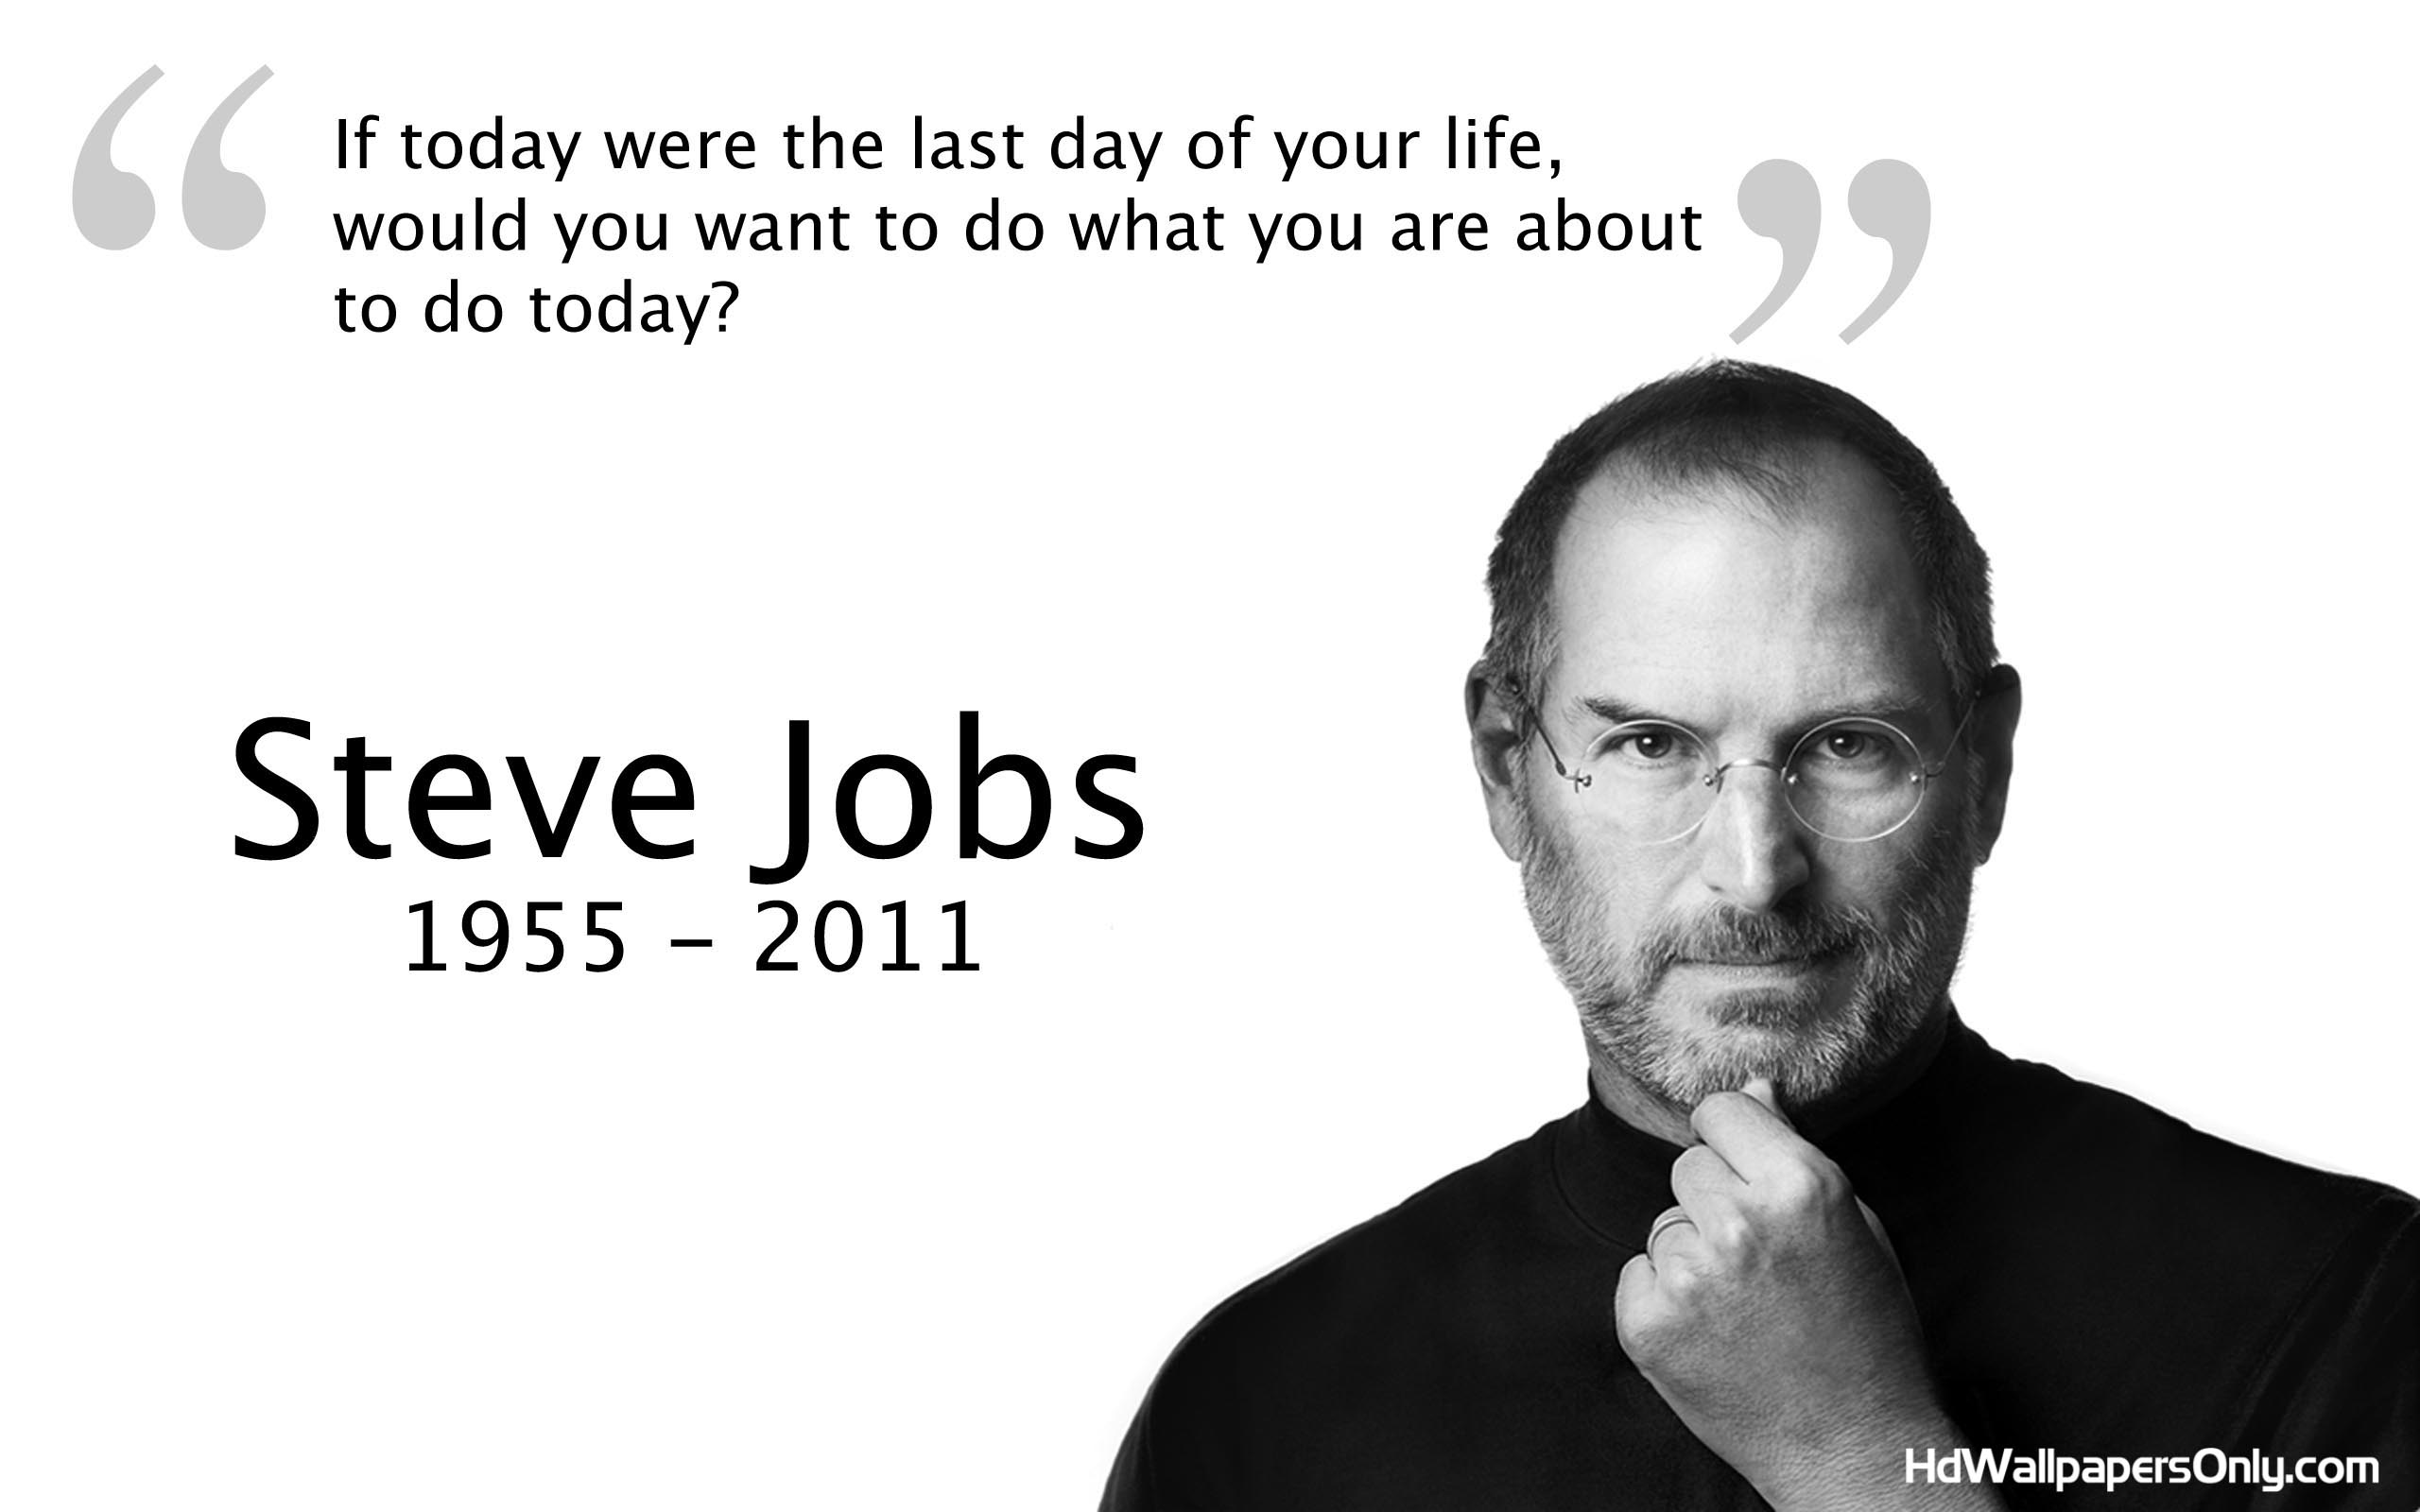 Steve Jobs Quotes On Life Prepossessing Steve Jobs Quotes